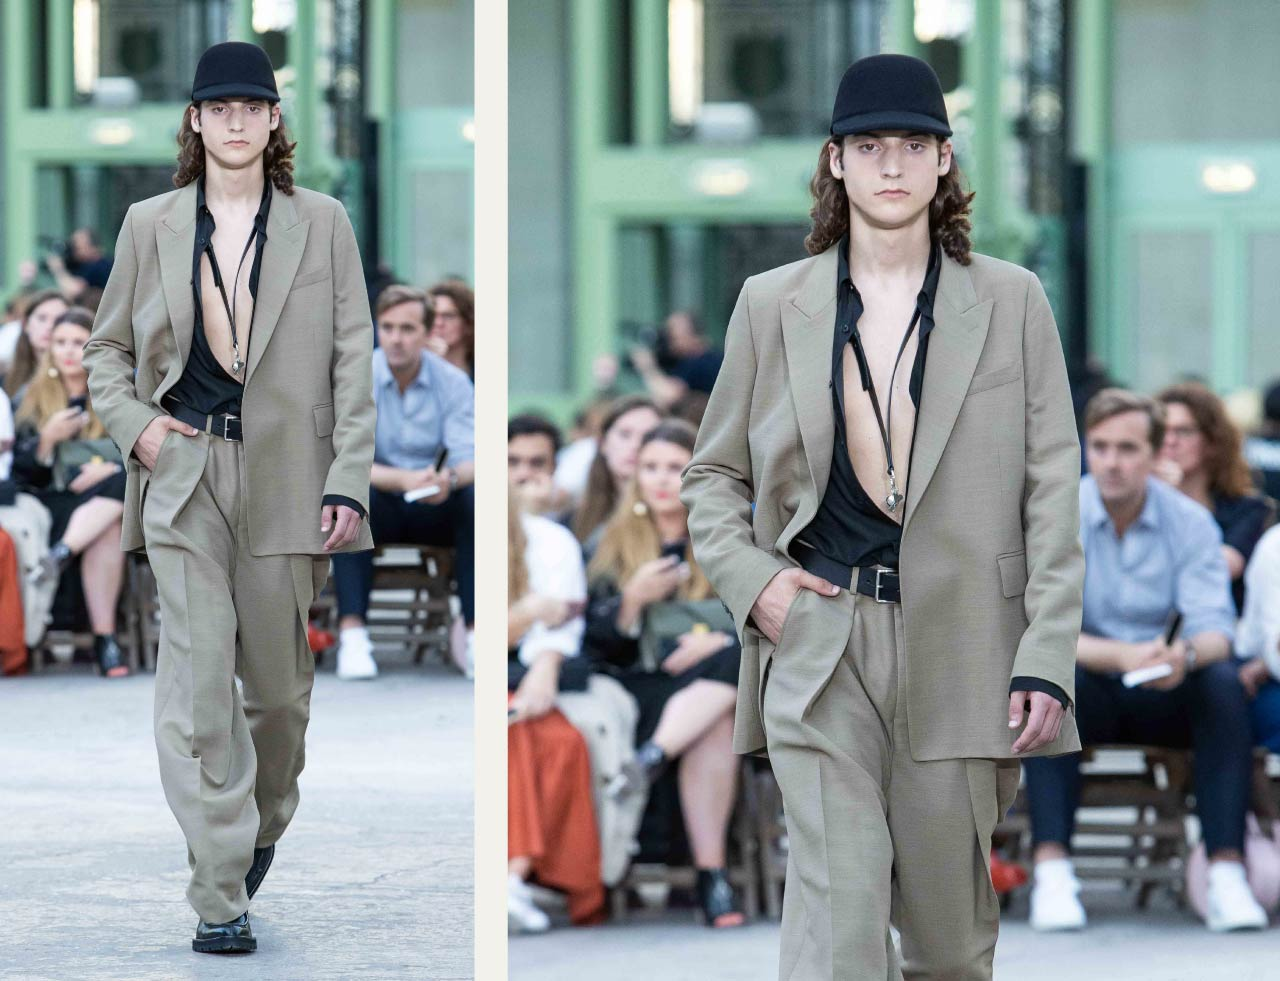 Tailored Jacket Hems - Straight or Curved? | The Cutting Class. Ami, SS20, Paris. Suit jacket with slightly rounded front corner.